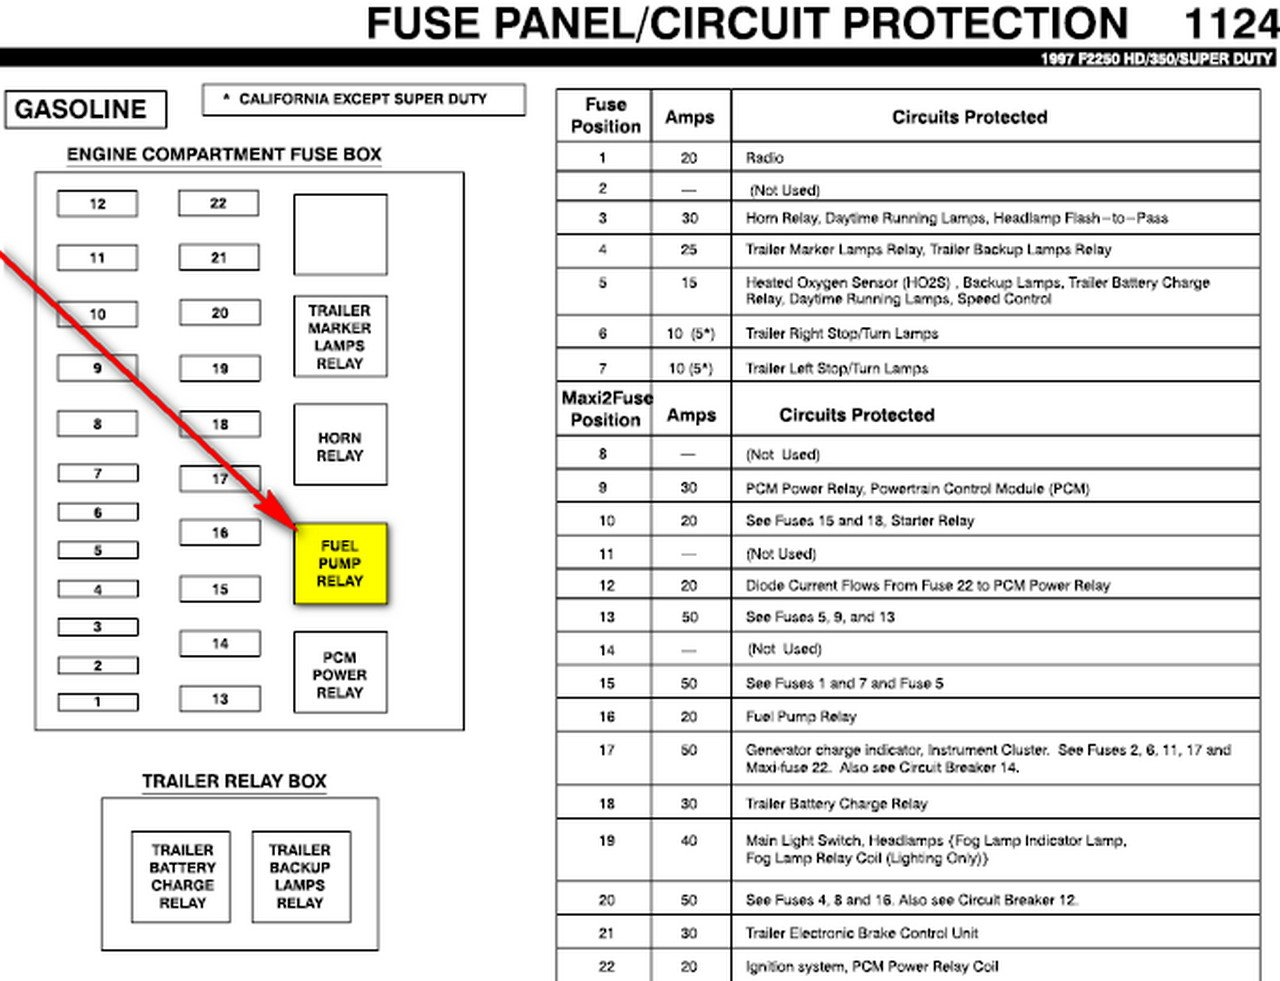 1997 ford f250 7 3 fuse box diagram detailed schematics diagram rh  jppastryarts com 2008 ford f250 super duty fuse panel diagram 2008 ford  f250 super duty ...